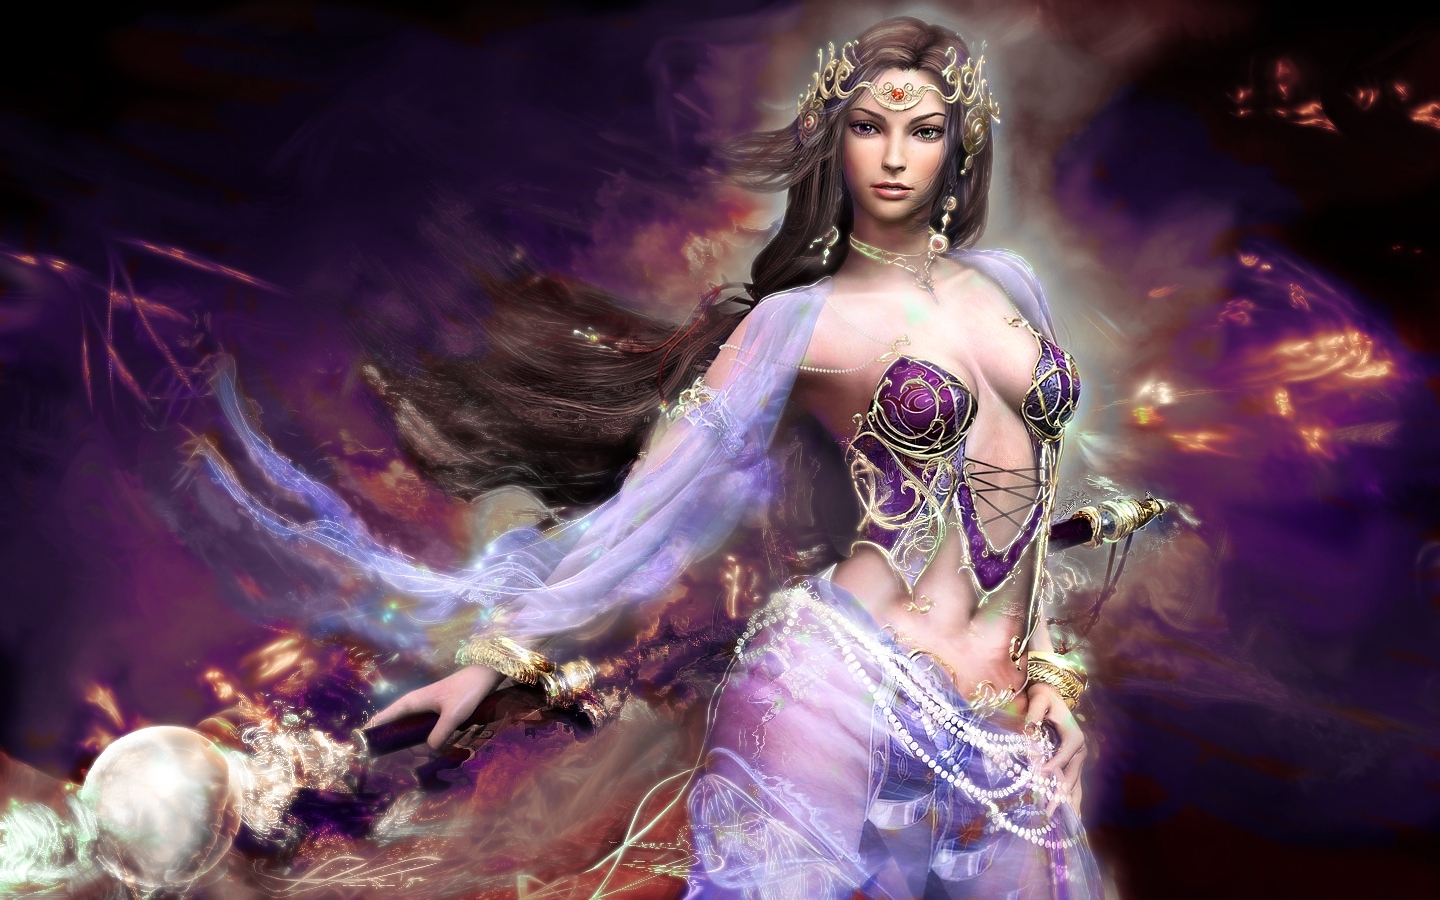 Fantasy images Fantasy girl HD wallpaper and background ...: http://www.fanpop.com/clubs/fantasy/images/17349267/title/fantasy-girl-wallpaper